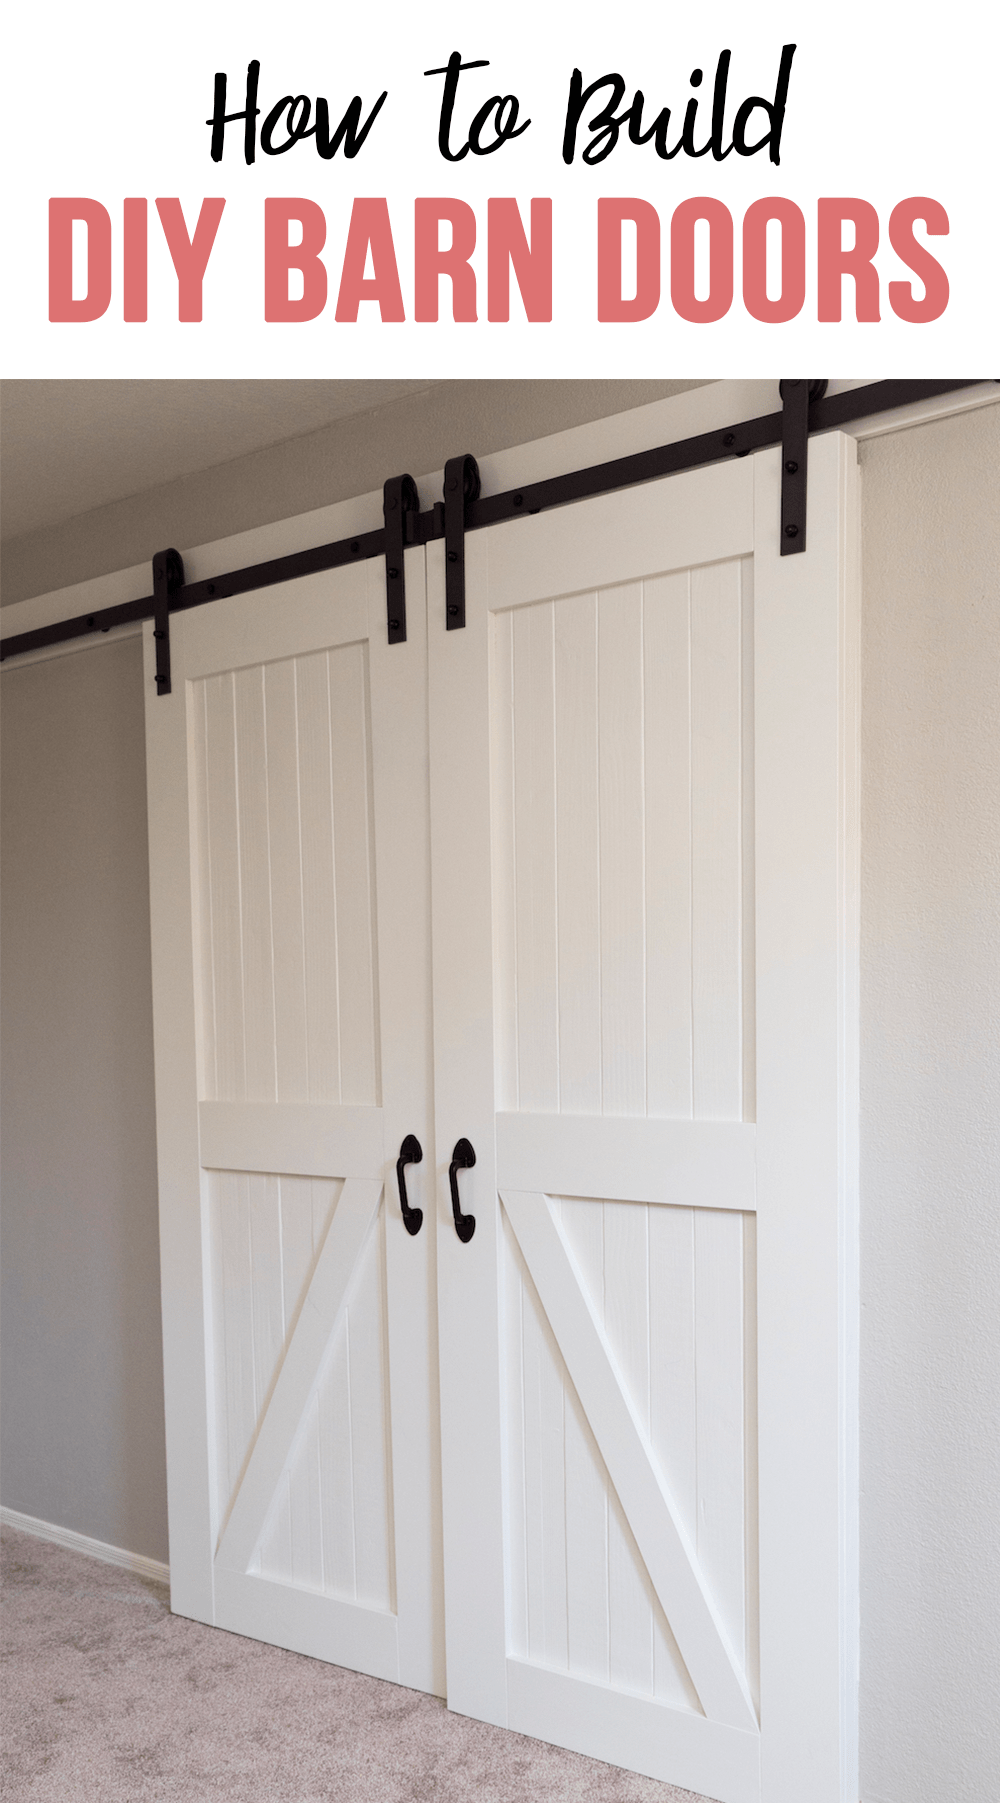 Closets Upstairs How To Build Barn Doors Diy Project Rise And Renovate Door Diy Projects Cheap Barn Doors Barn Door Diy Projects